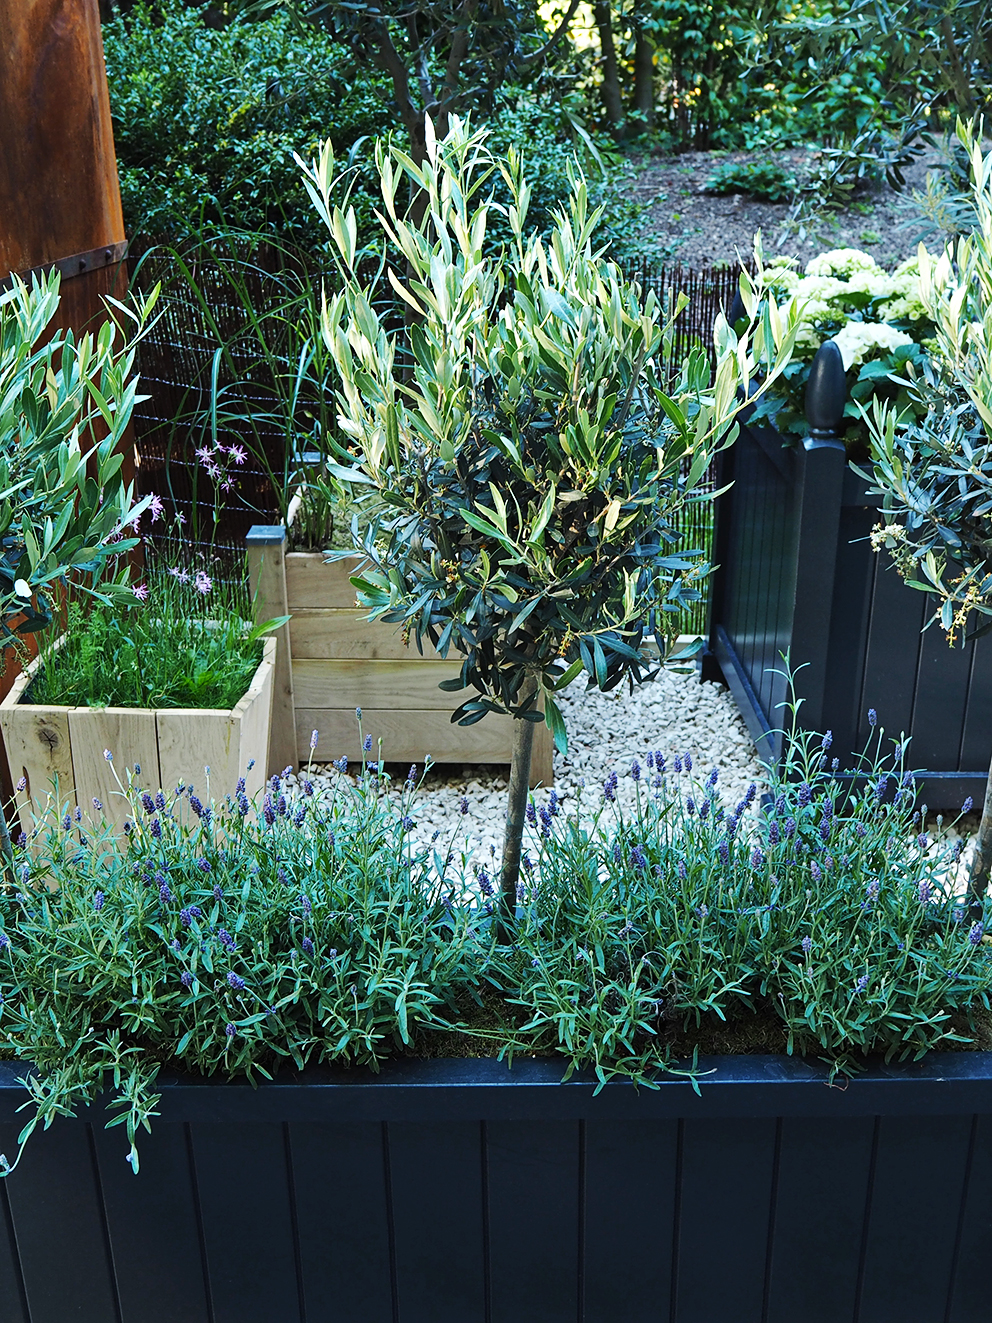 French For Pineapple Blog - RHS Chelsea Flower Show 2017 - Traditional planters with Olive and Lavender